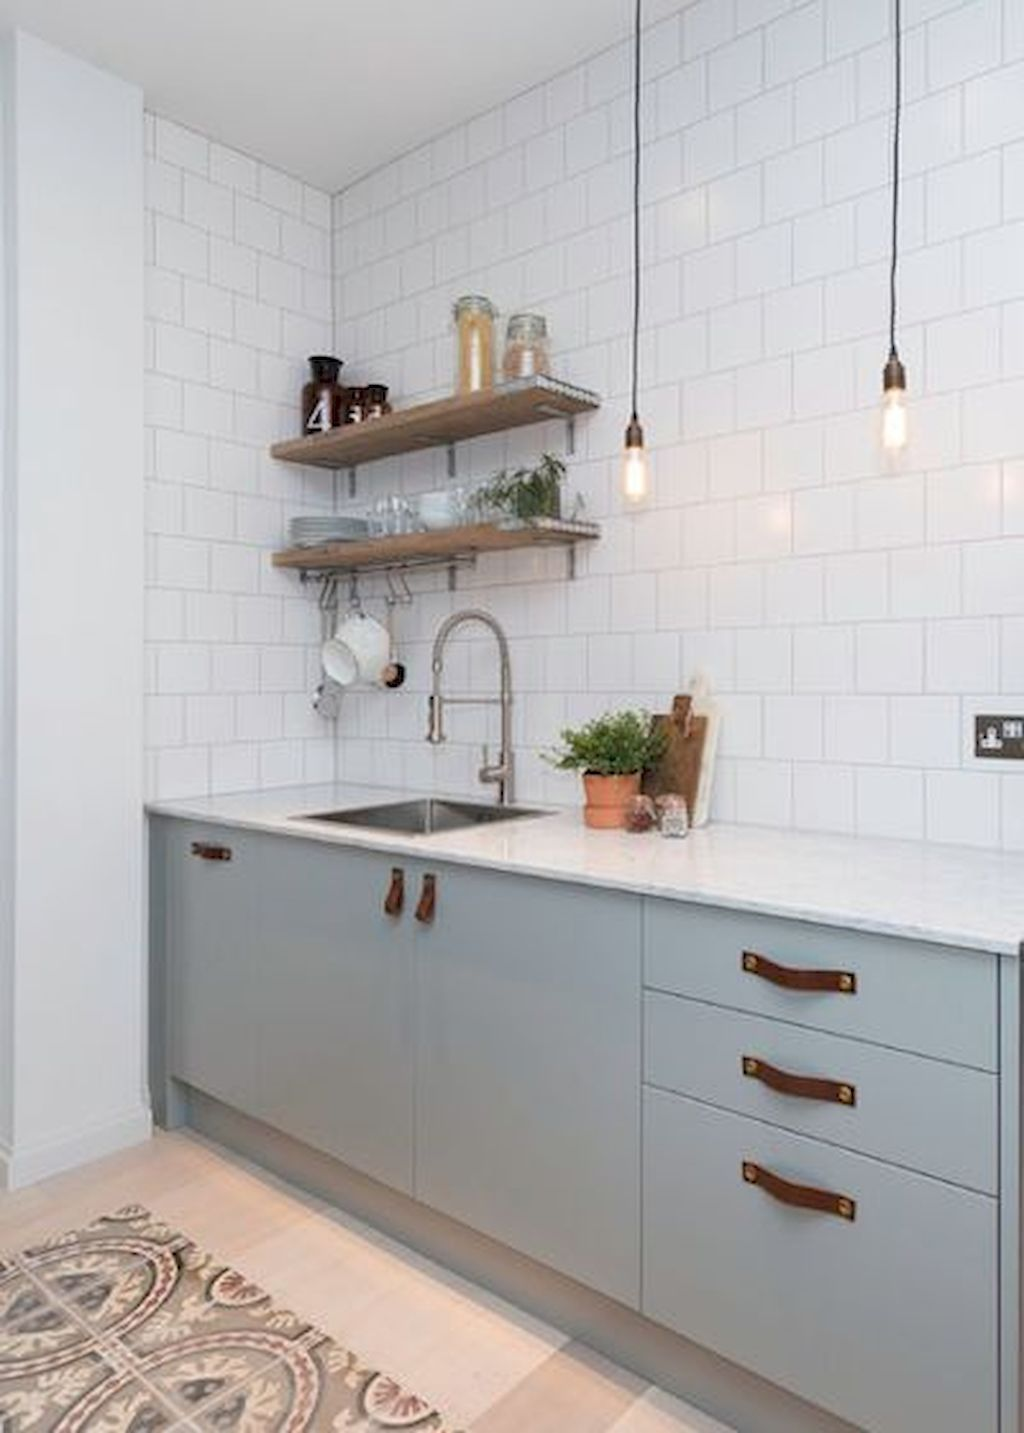 Marvelous Scandinavian Kitchen Design Interior Of The All White And Beautiful Tiny Kitch Scandinavian Kitchen Design Scandinavian Kitchen Modern Kitchen Design